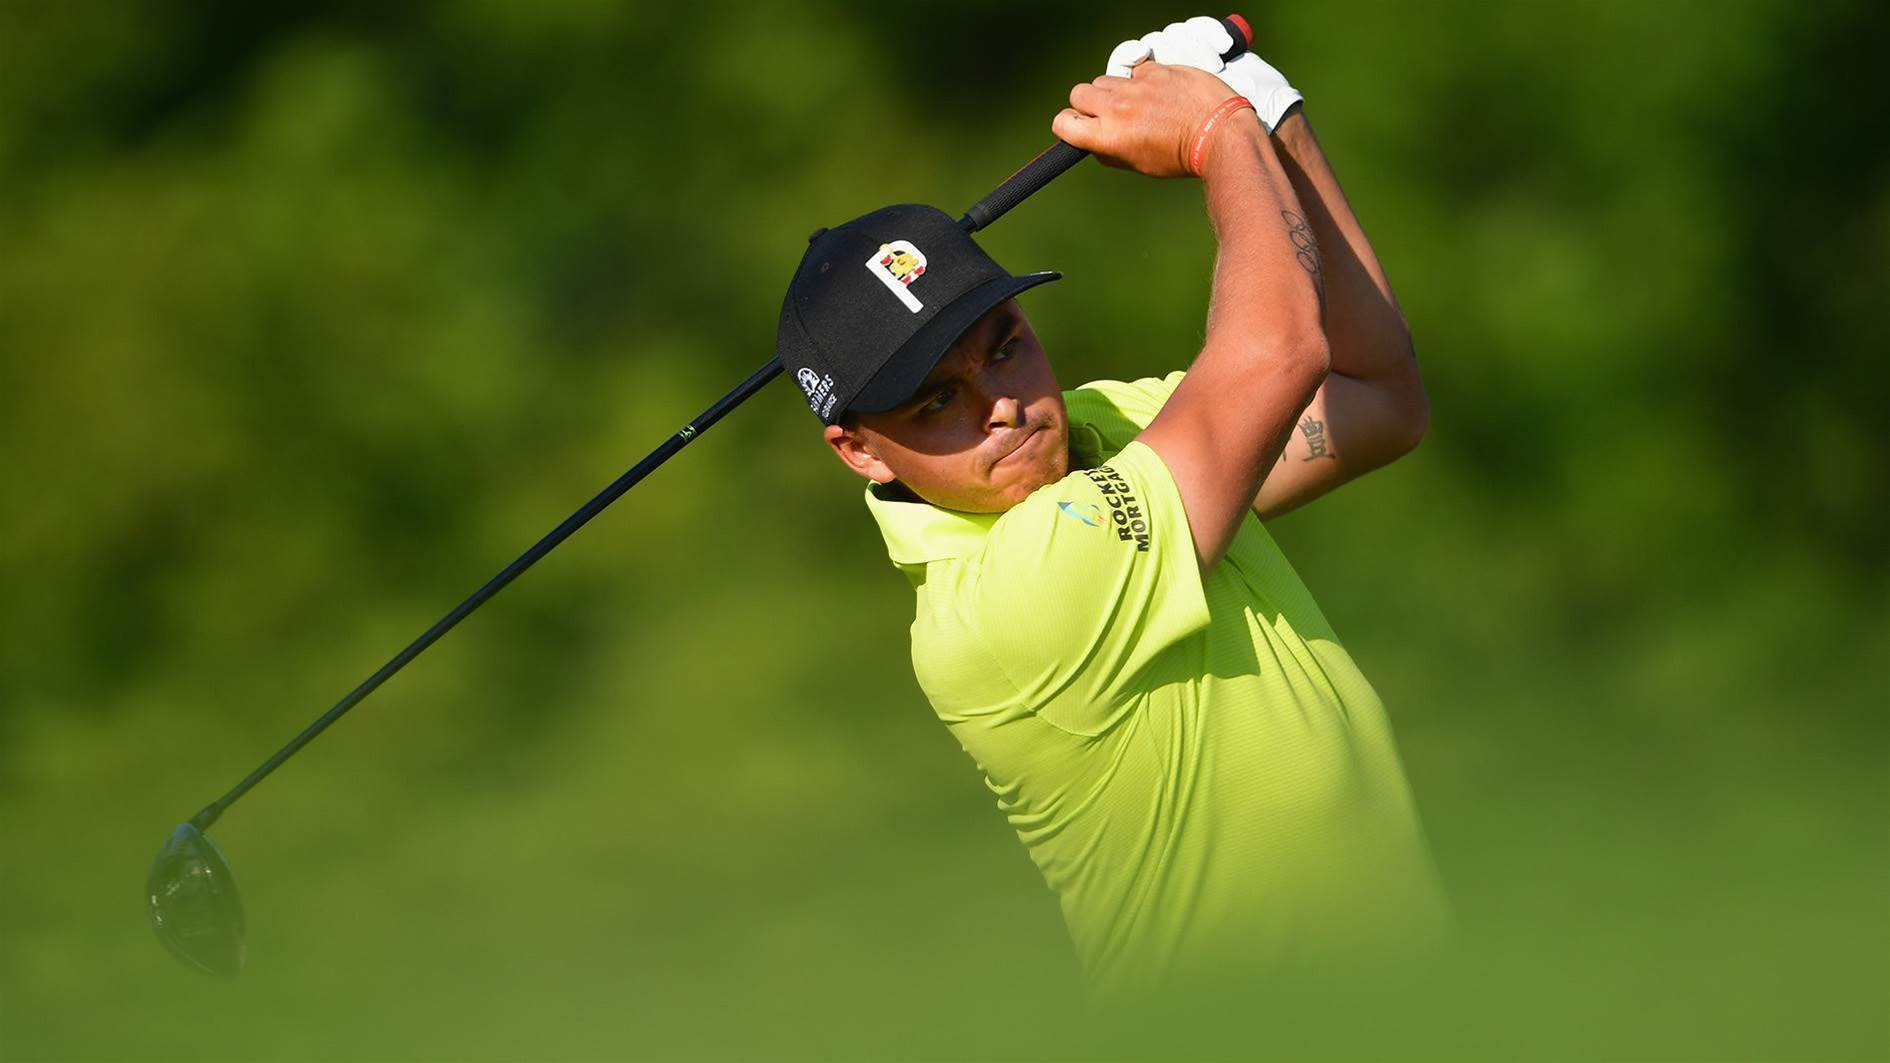 Lyle inspires Fowler and Aussies at PGA